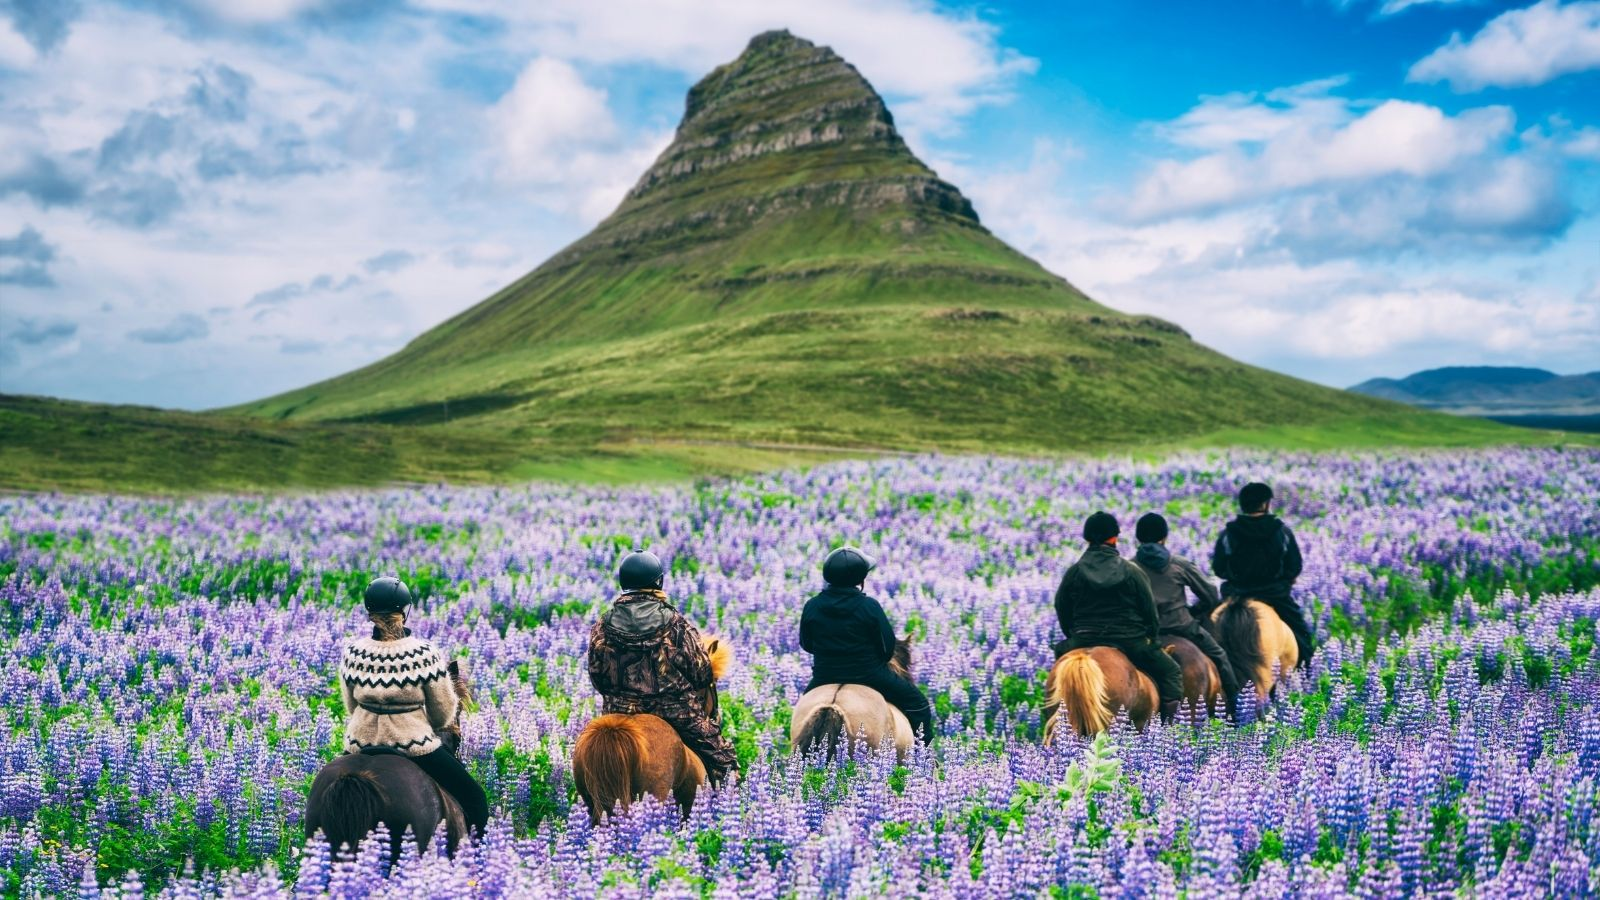 Tourists riding horses through wildflower meadow in Iceland (Photo: Shutterstock)